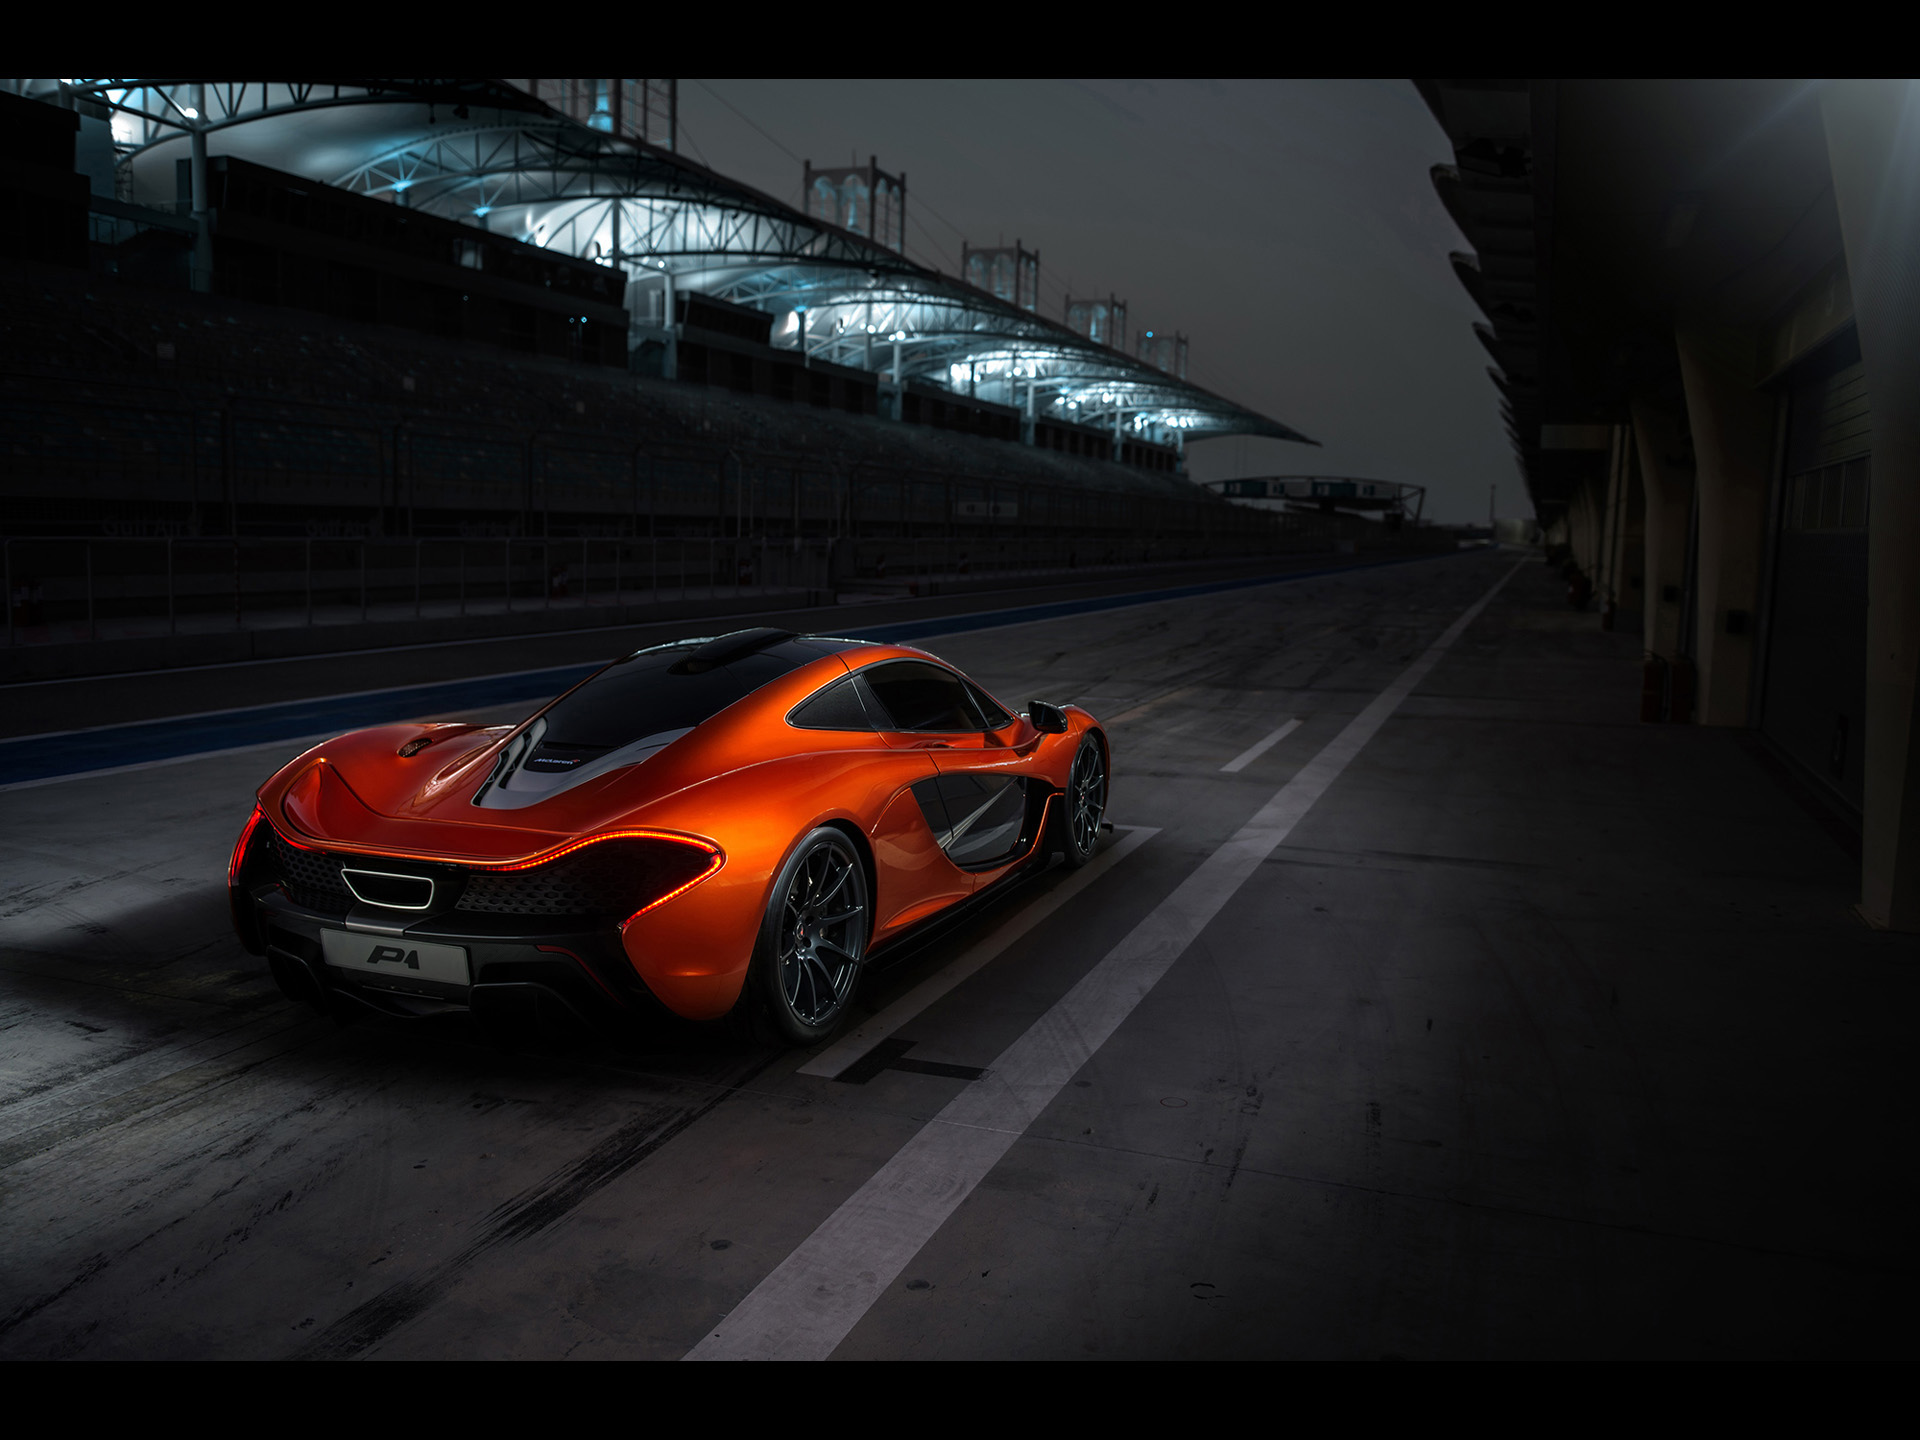 Iphone X Motion Wallpaper 2013 Mclaren P1 At Bahrain Rear Angle Static Inside